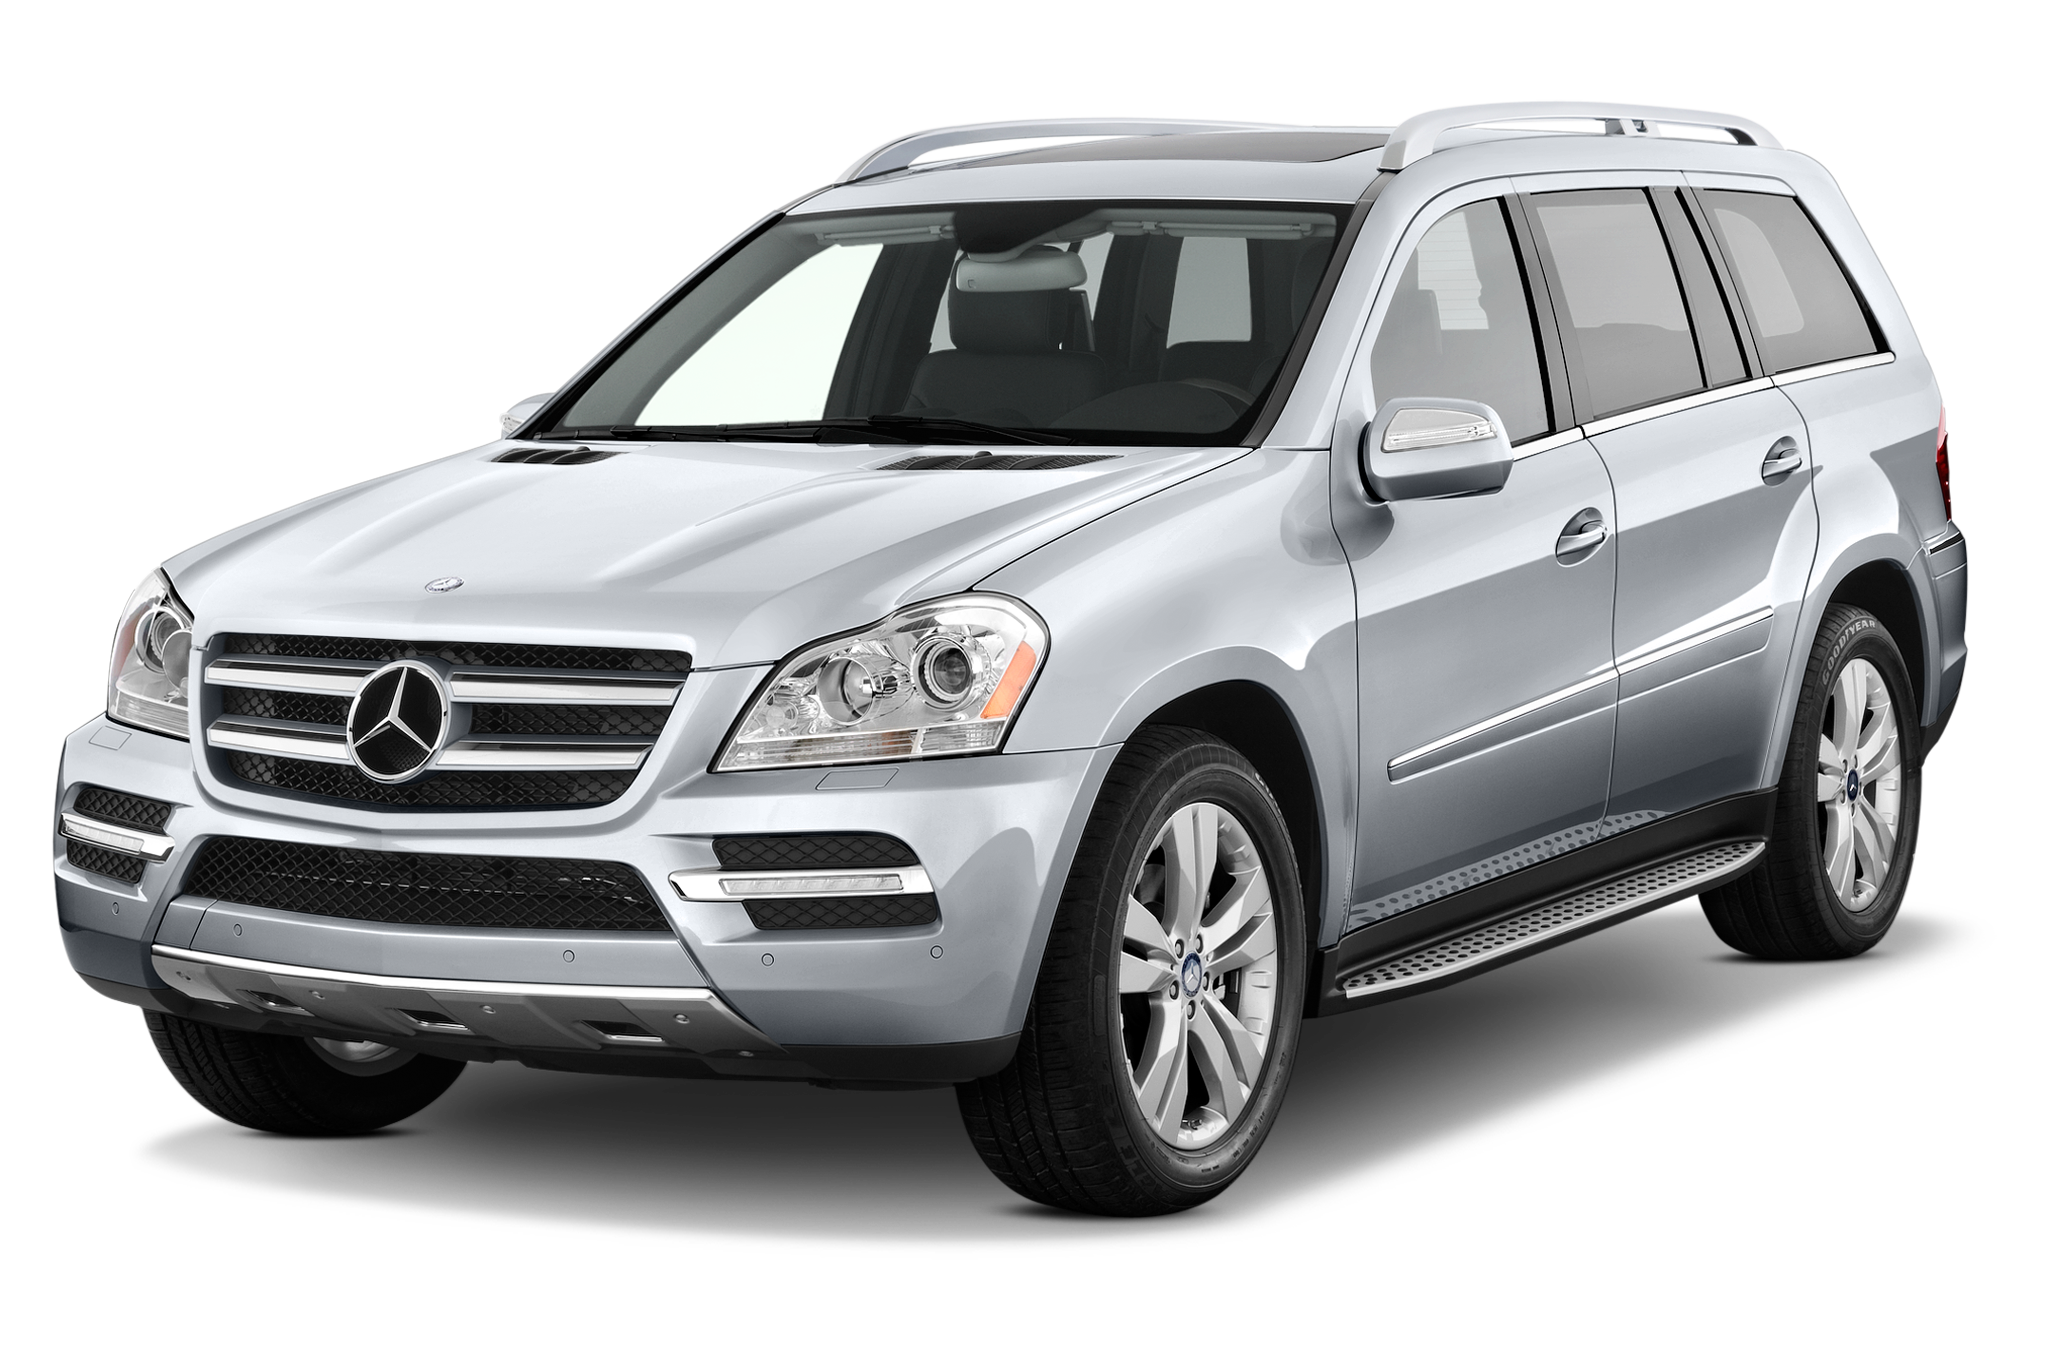 2010 mercedes benz gl350 bluetec mercedes benz fullsize luxury suv review automobile magazine. Black Bedroom Furniture Sets. Home Design Ideas